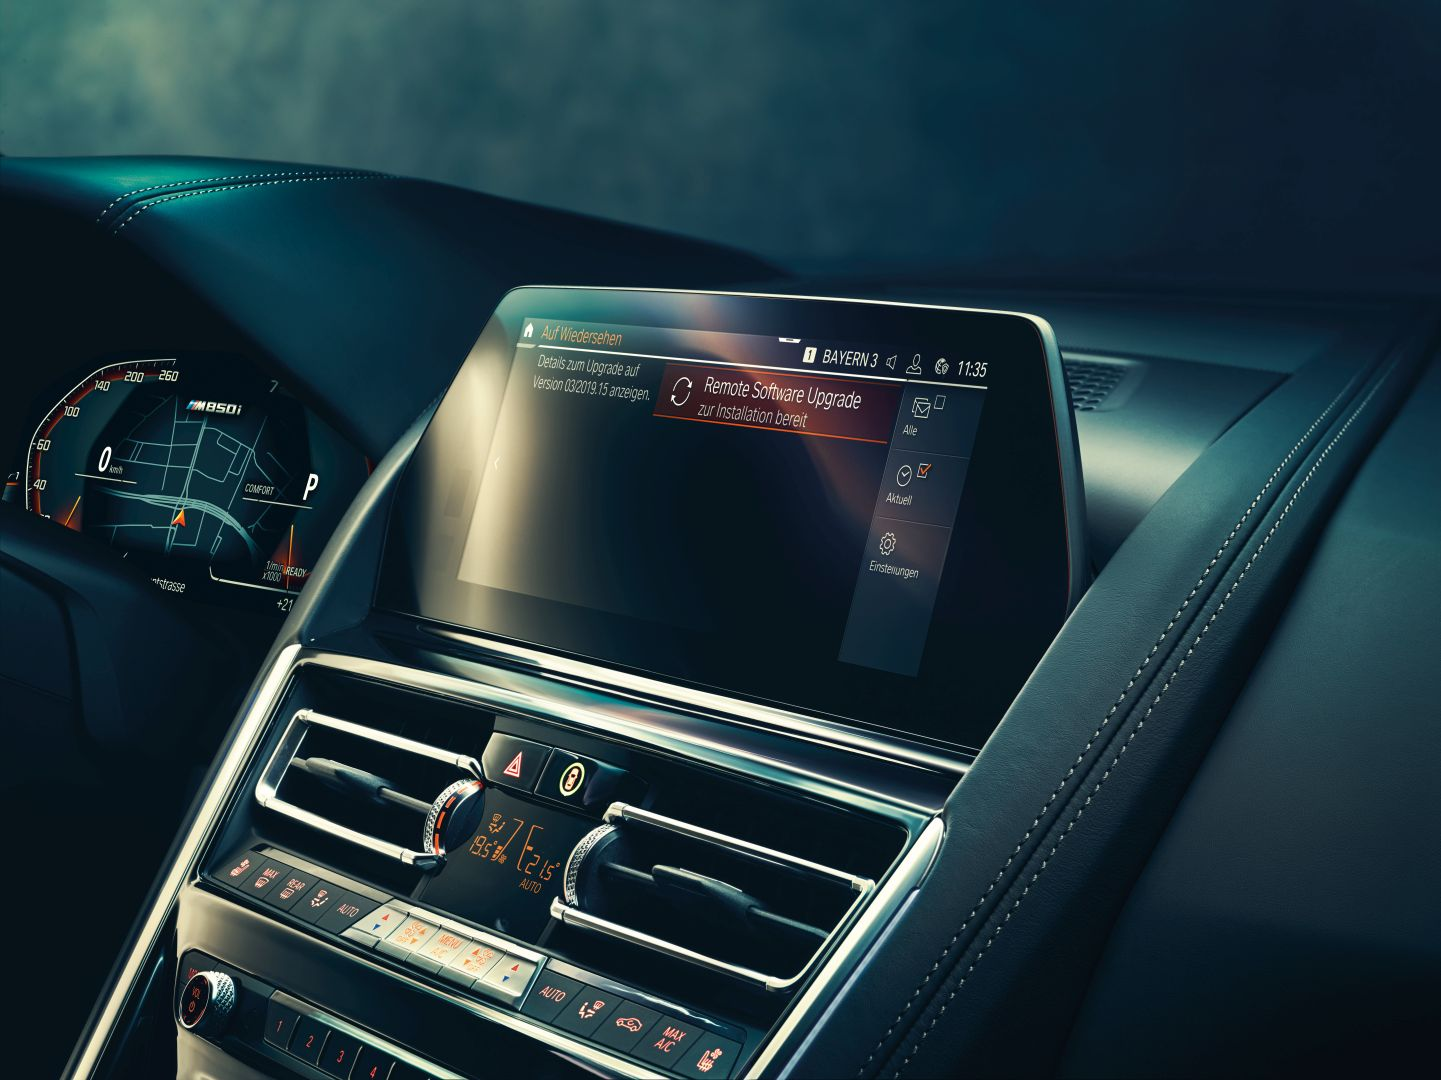 BMW to Introduce Intelligent Personal Assistant in March 2019